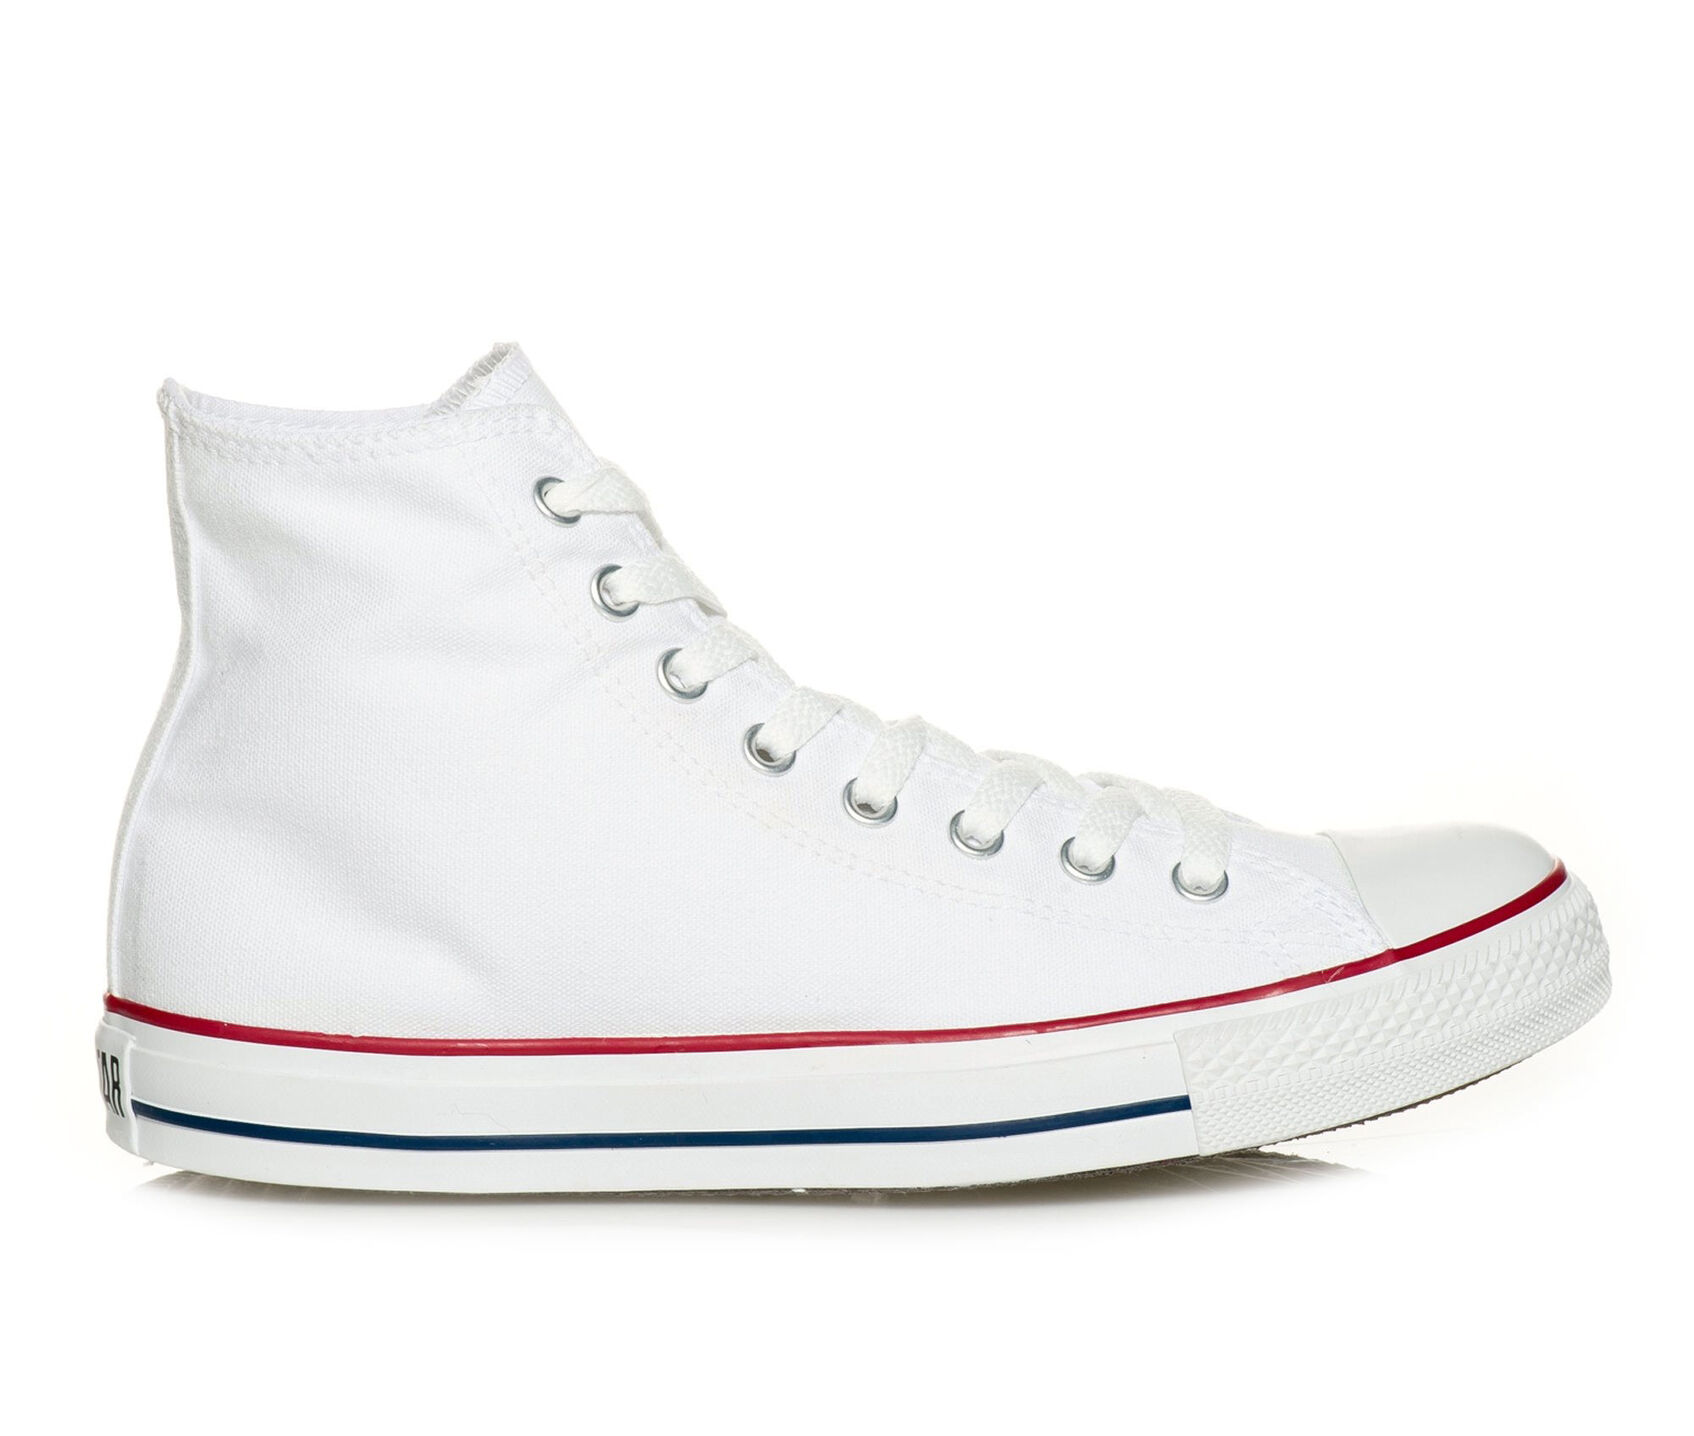 871f7f9fc6a1 ... Converse Chuck Taylor All Star Canvas Hi High Top Sneakers. Previous